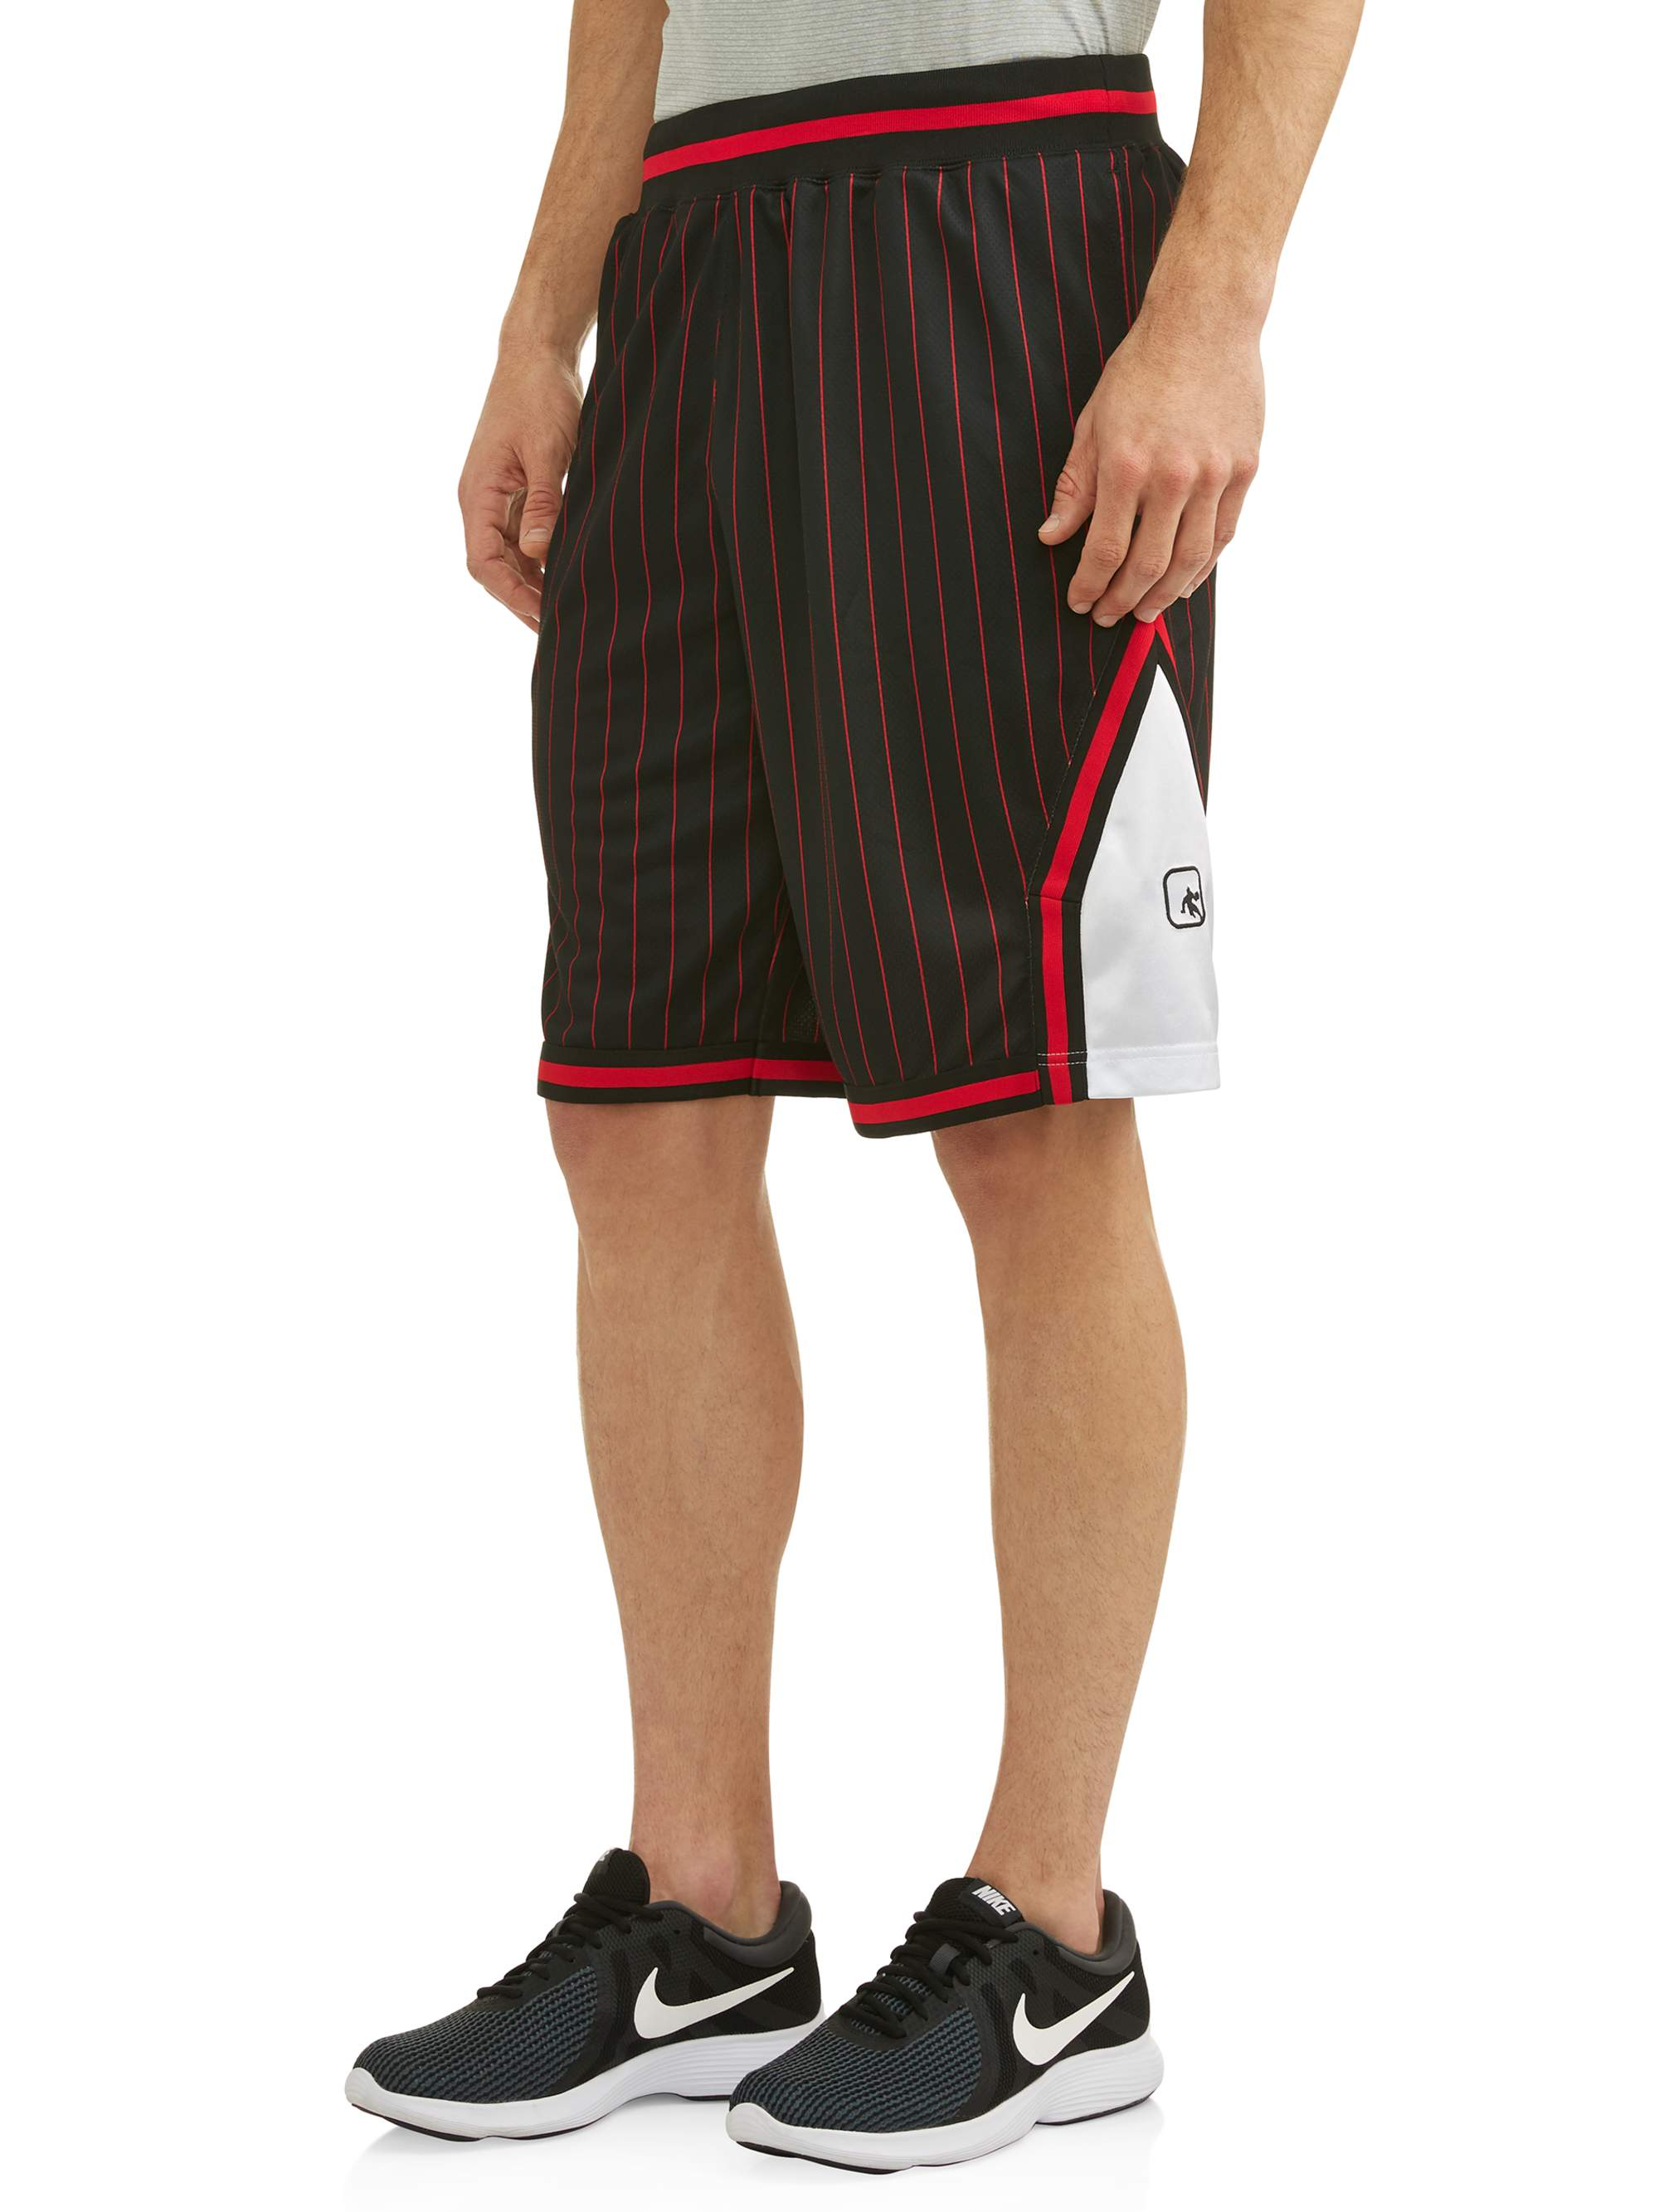 AND1 Men's Striped Mesh Basketball Shorts